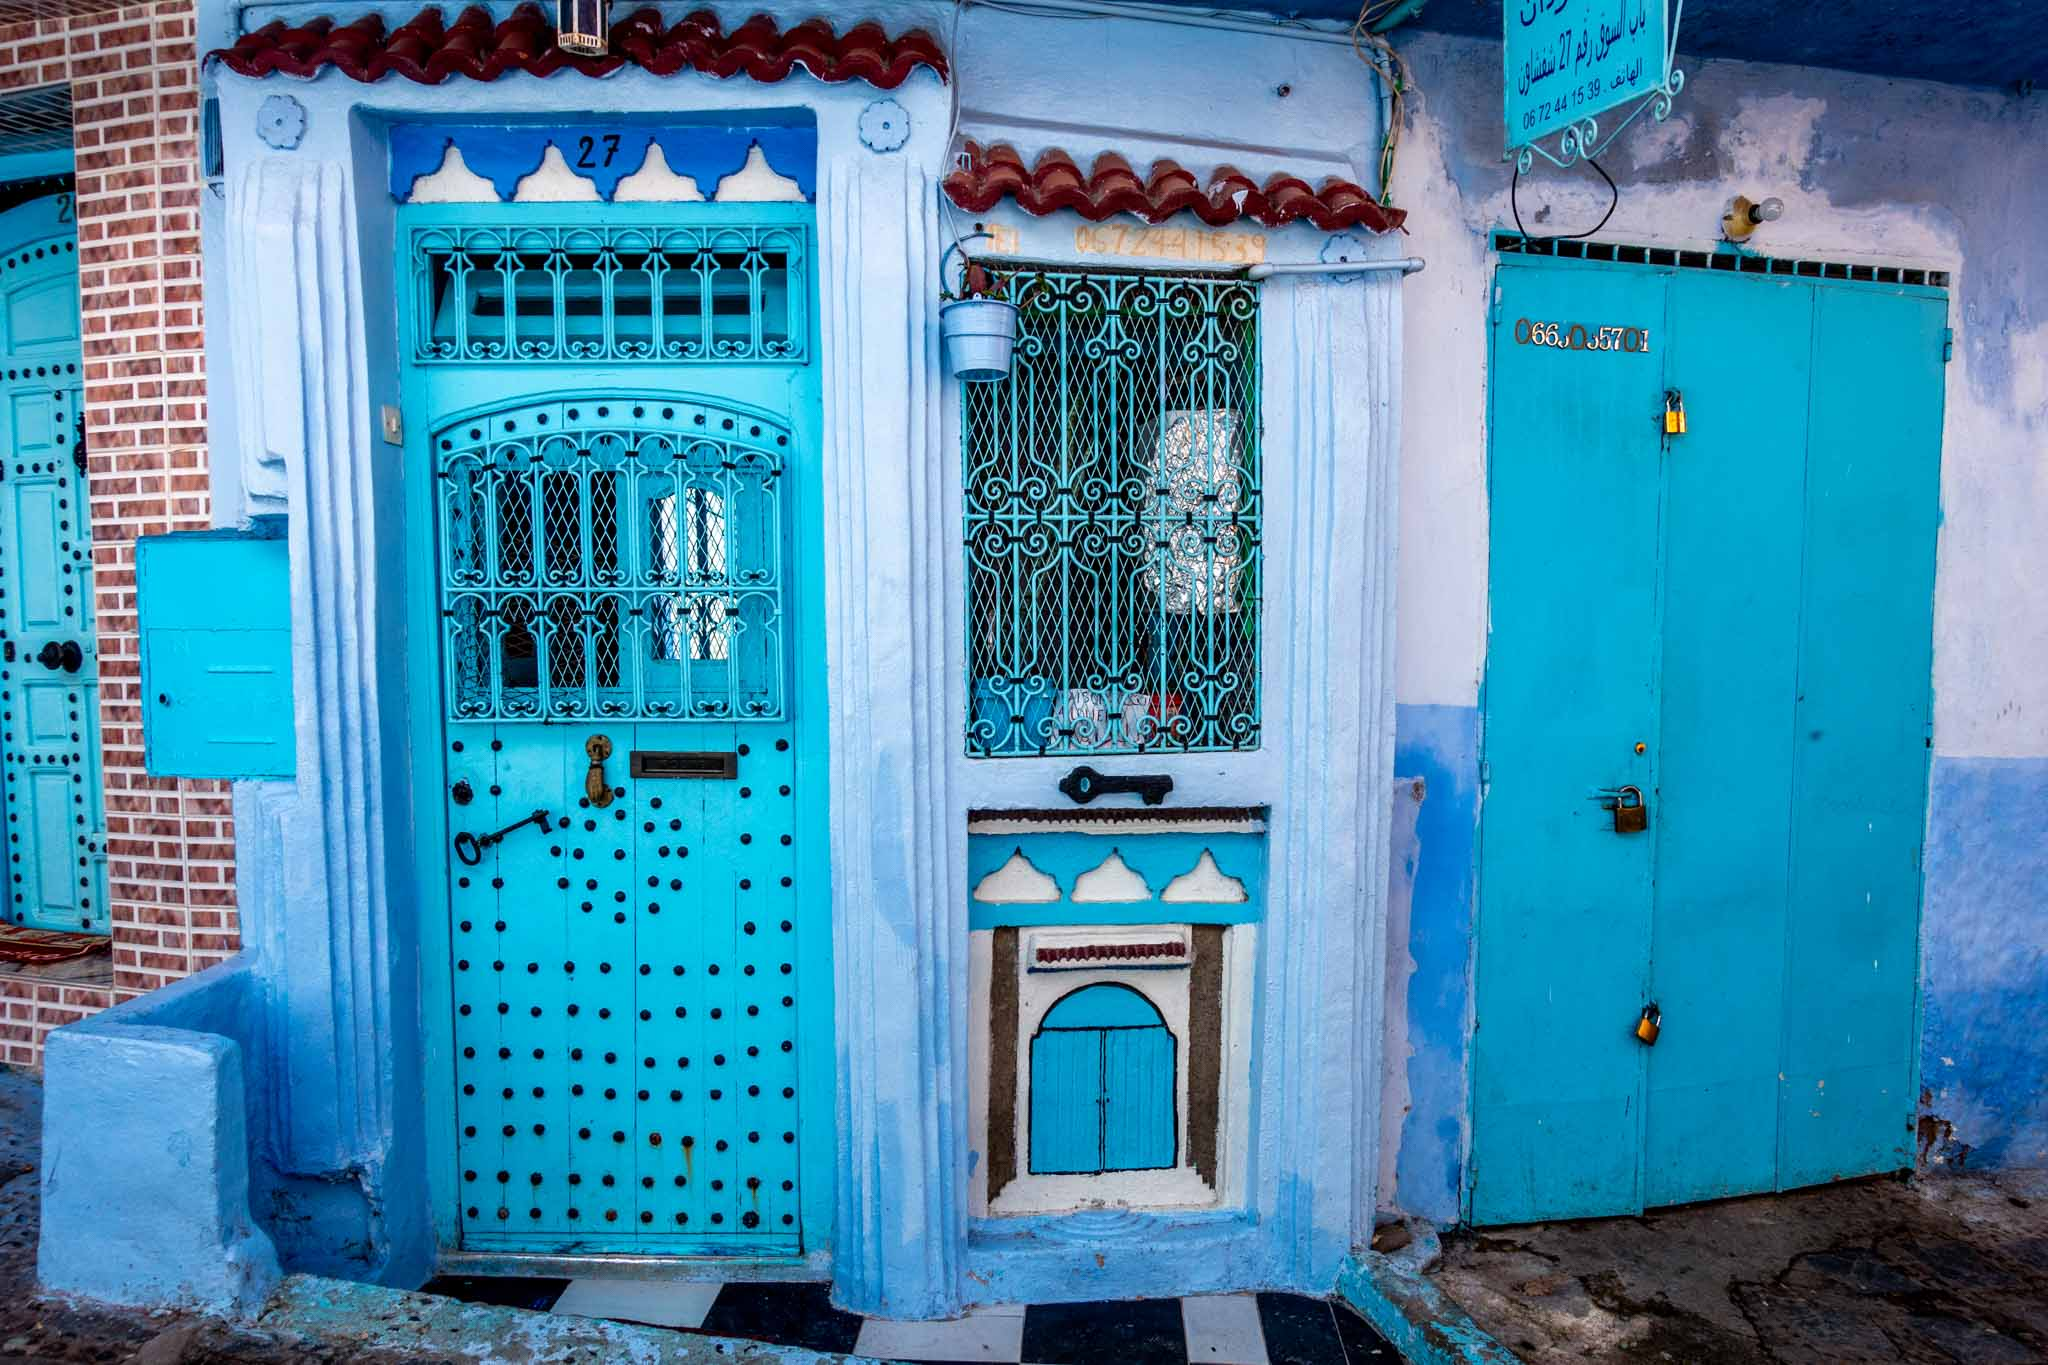 Turquoise doors decorated with turquoise wrought iron